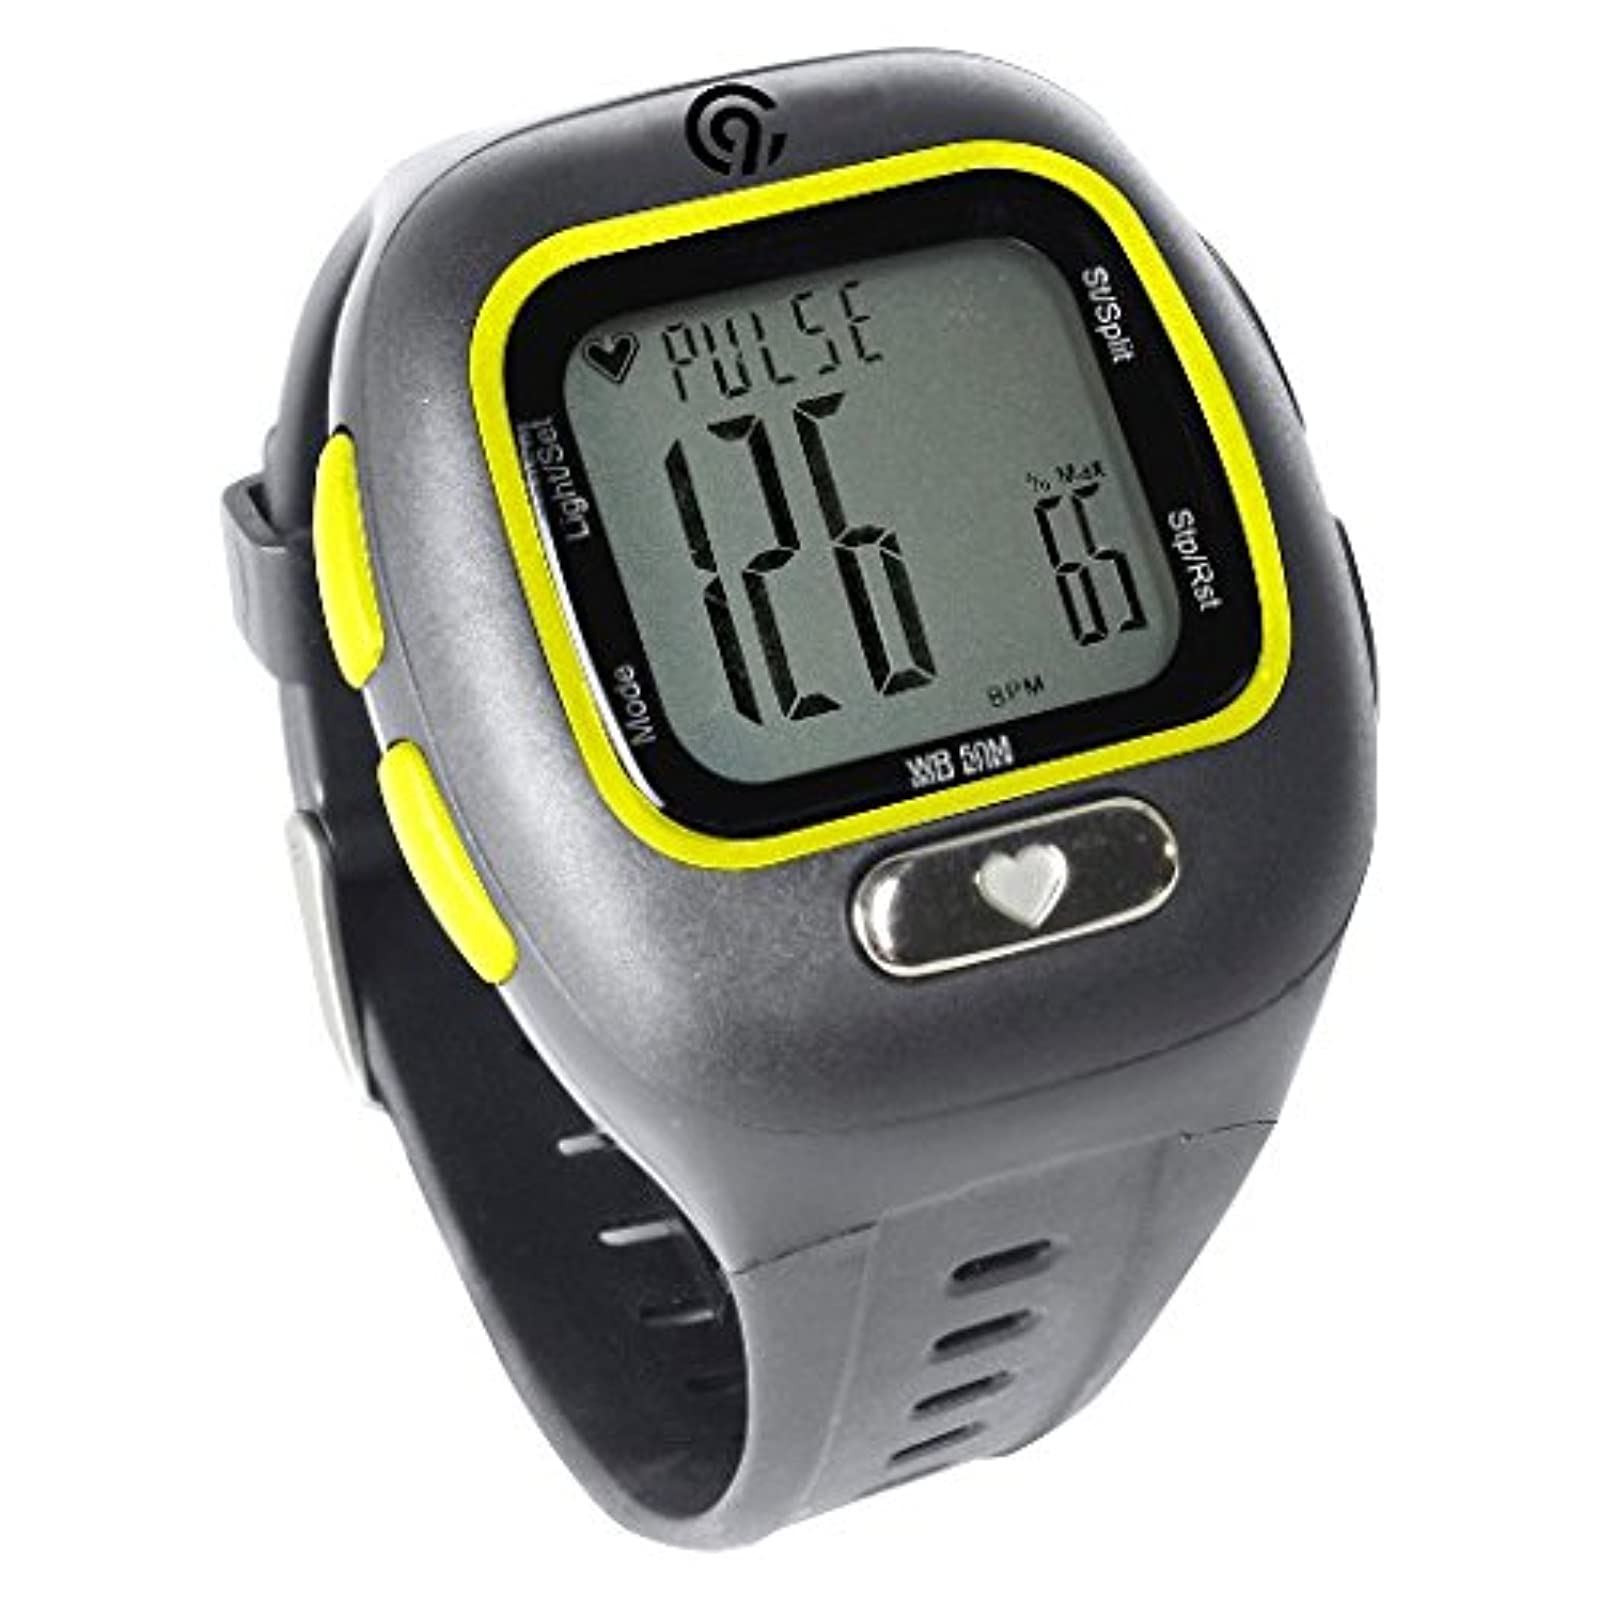 C9 Champion Pace Heart Rate Monitor Charcoal/yellow